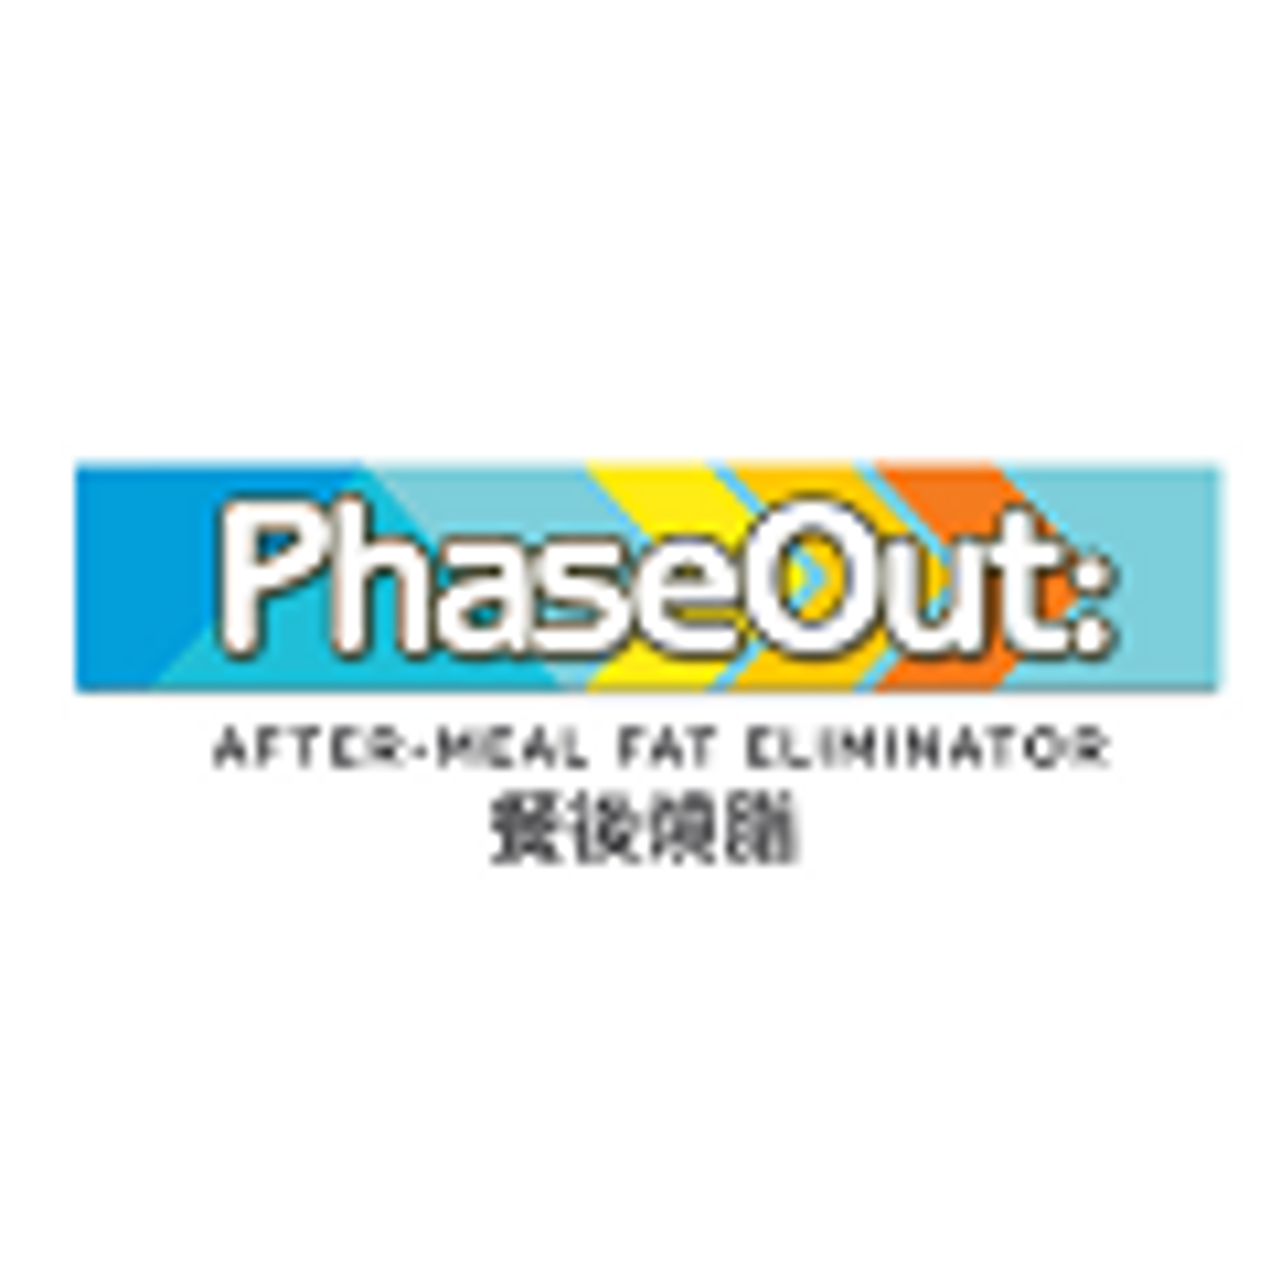 PhaseOut: